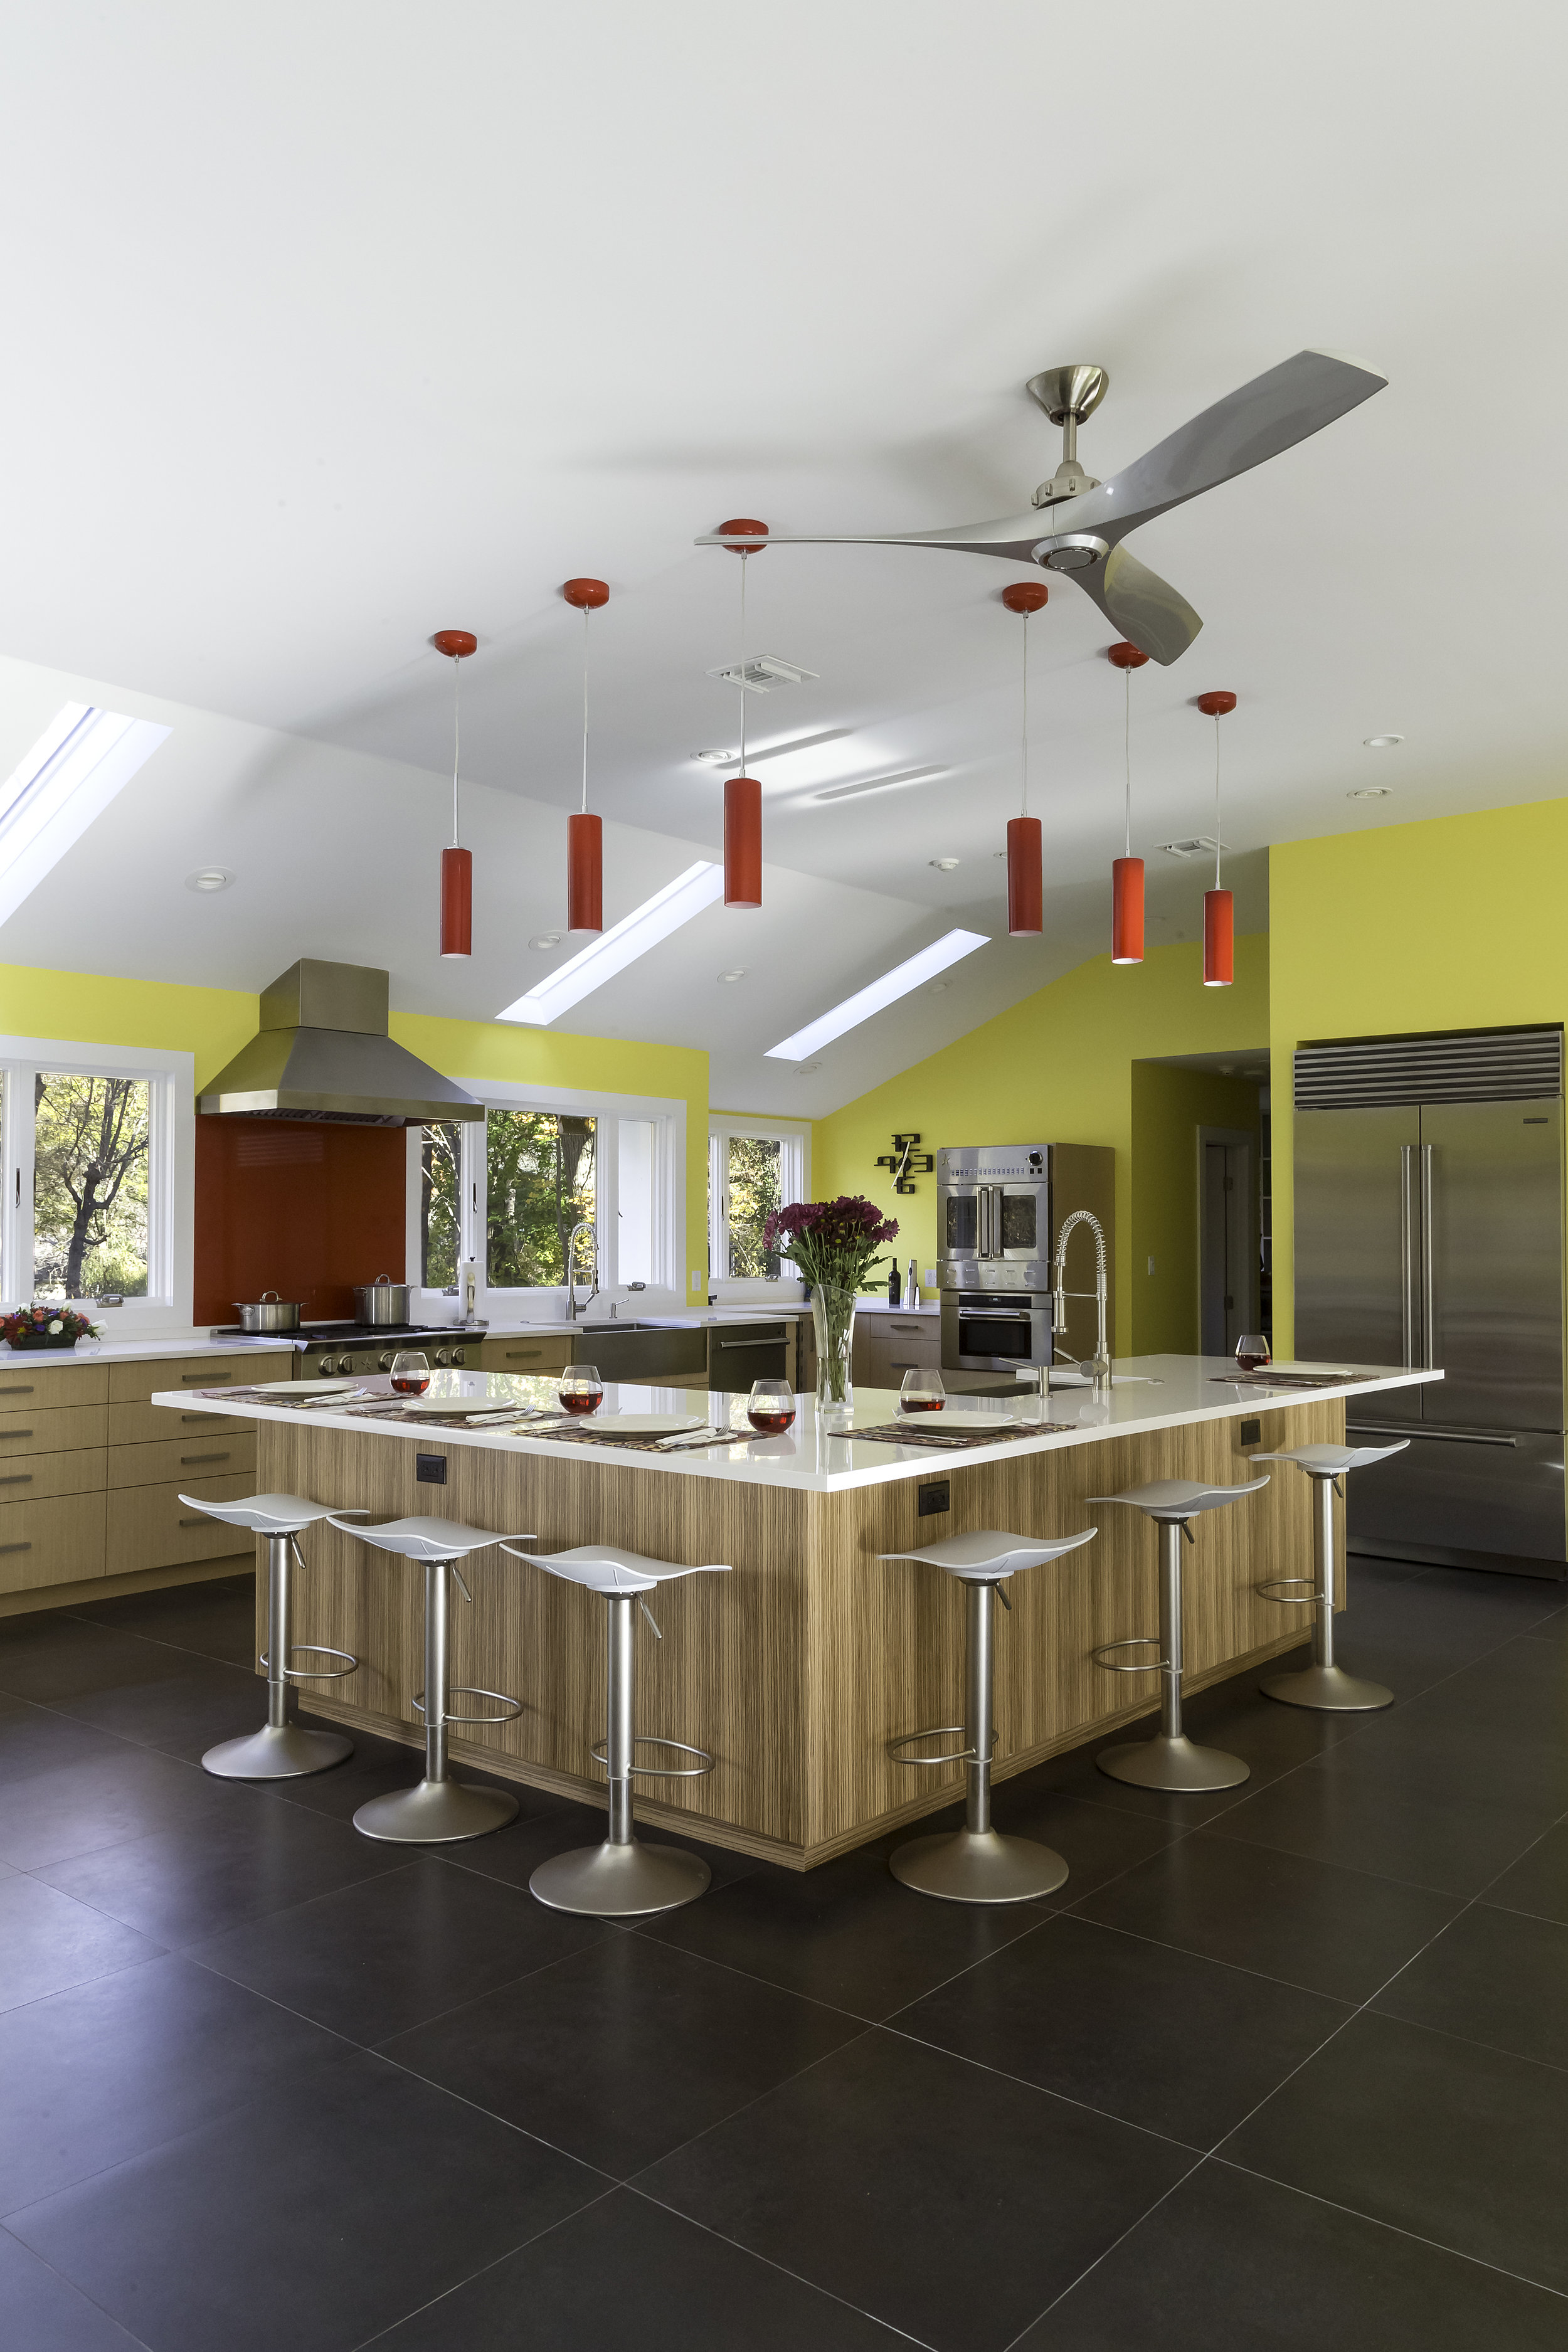 Contemporary style kitchen with L'shaped kitchen island